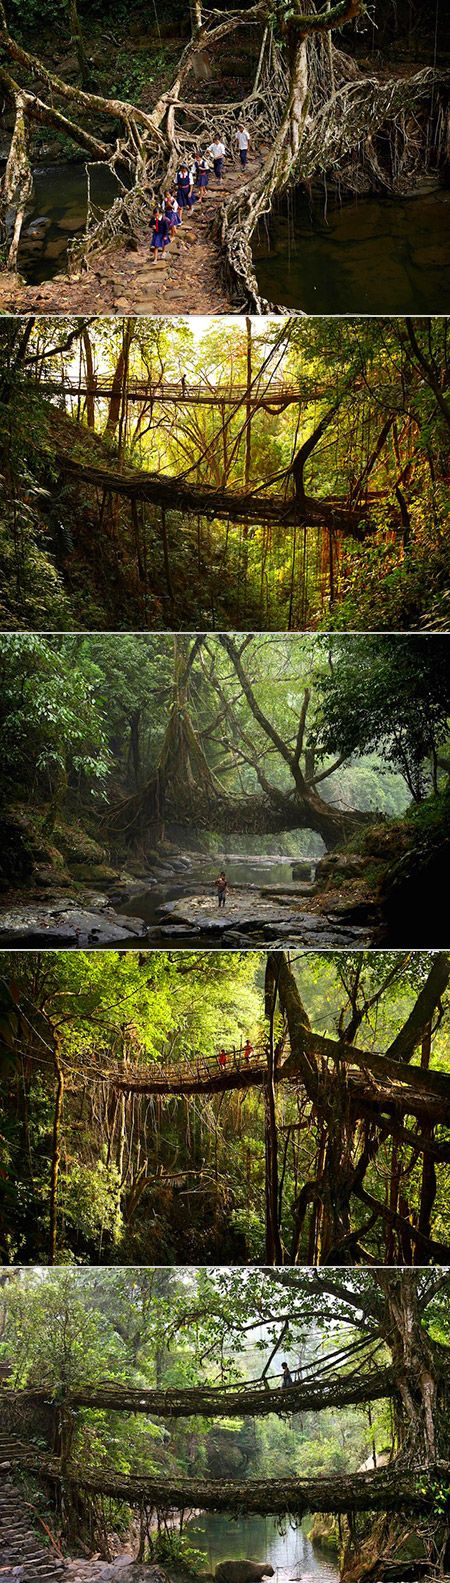 Mawsynram in Meghalaya, India  Living tree root bridges! All made by hand and passed through the generations by word of mouth!Amazing!